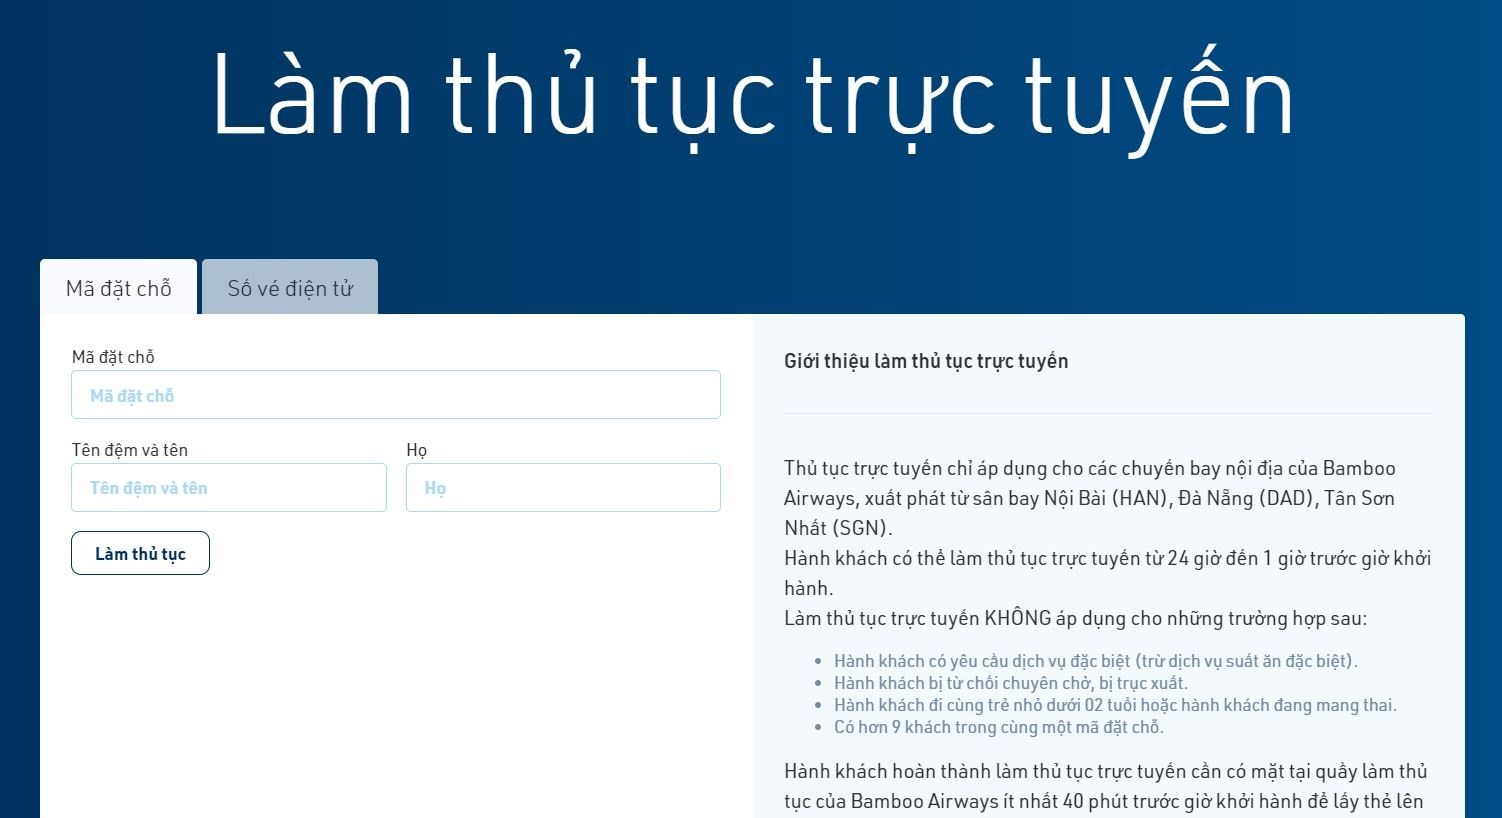 huong-dan-check-in-online-check-in-truc-tuyen-ve-may-bay-5d16ed52a698d